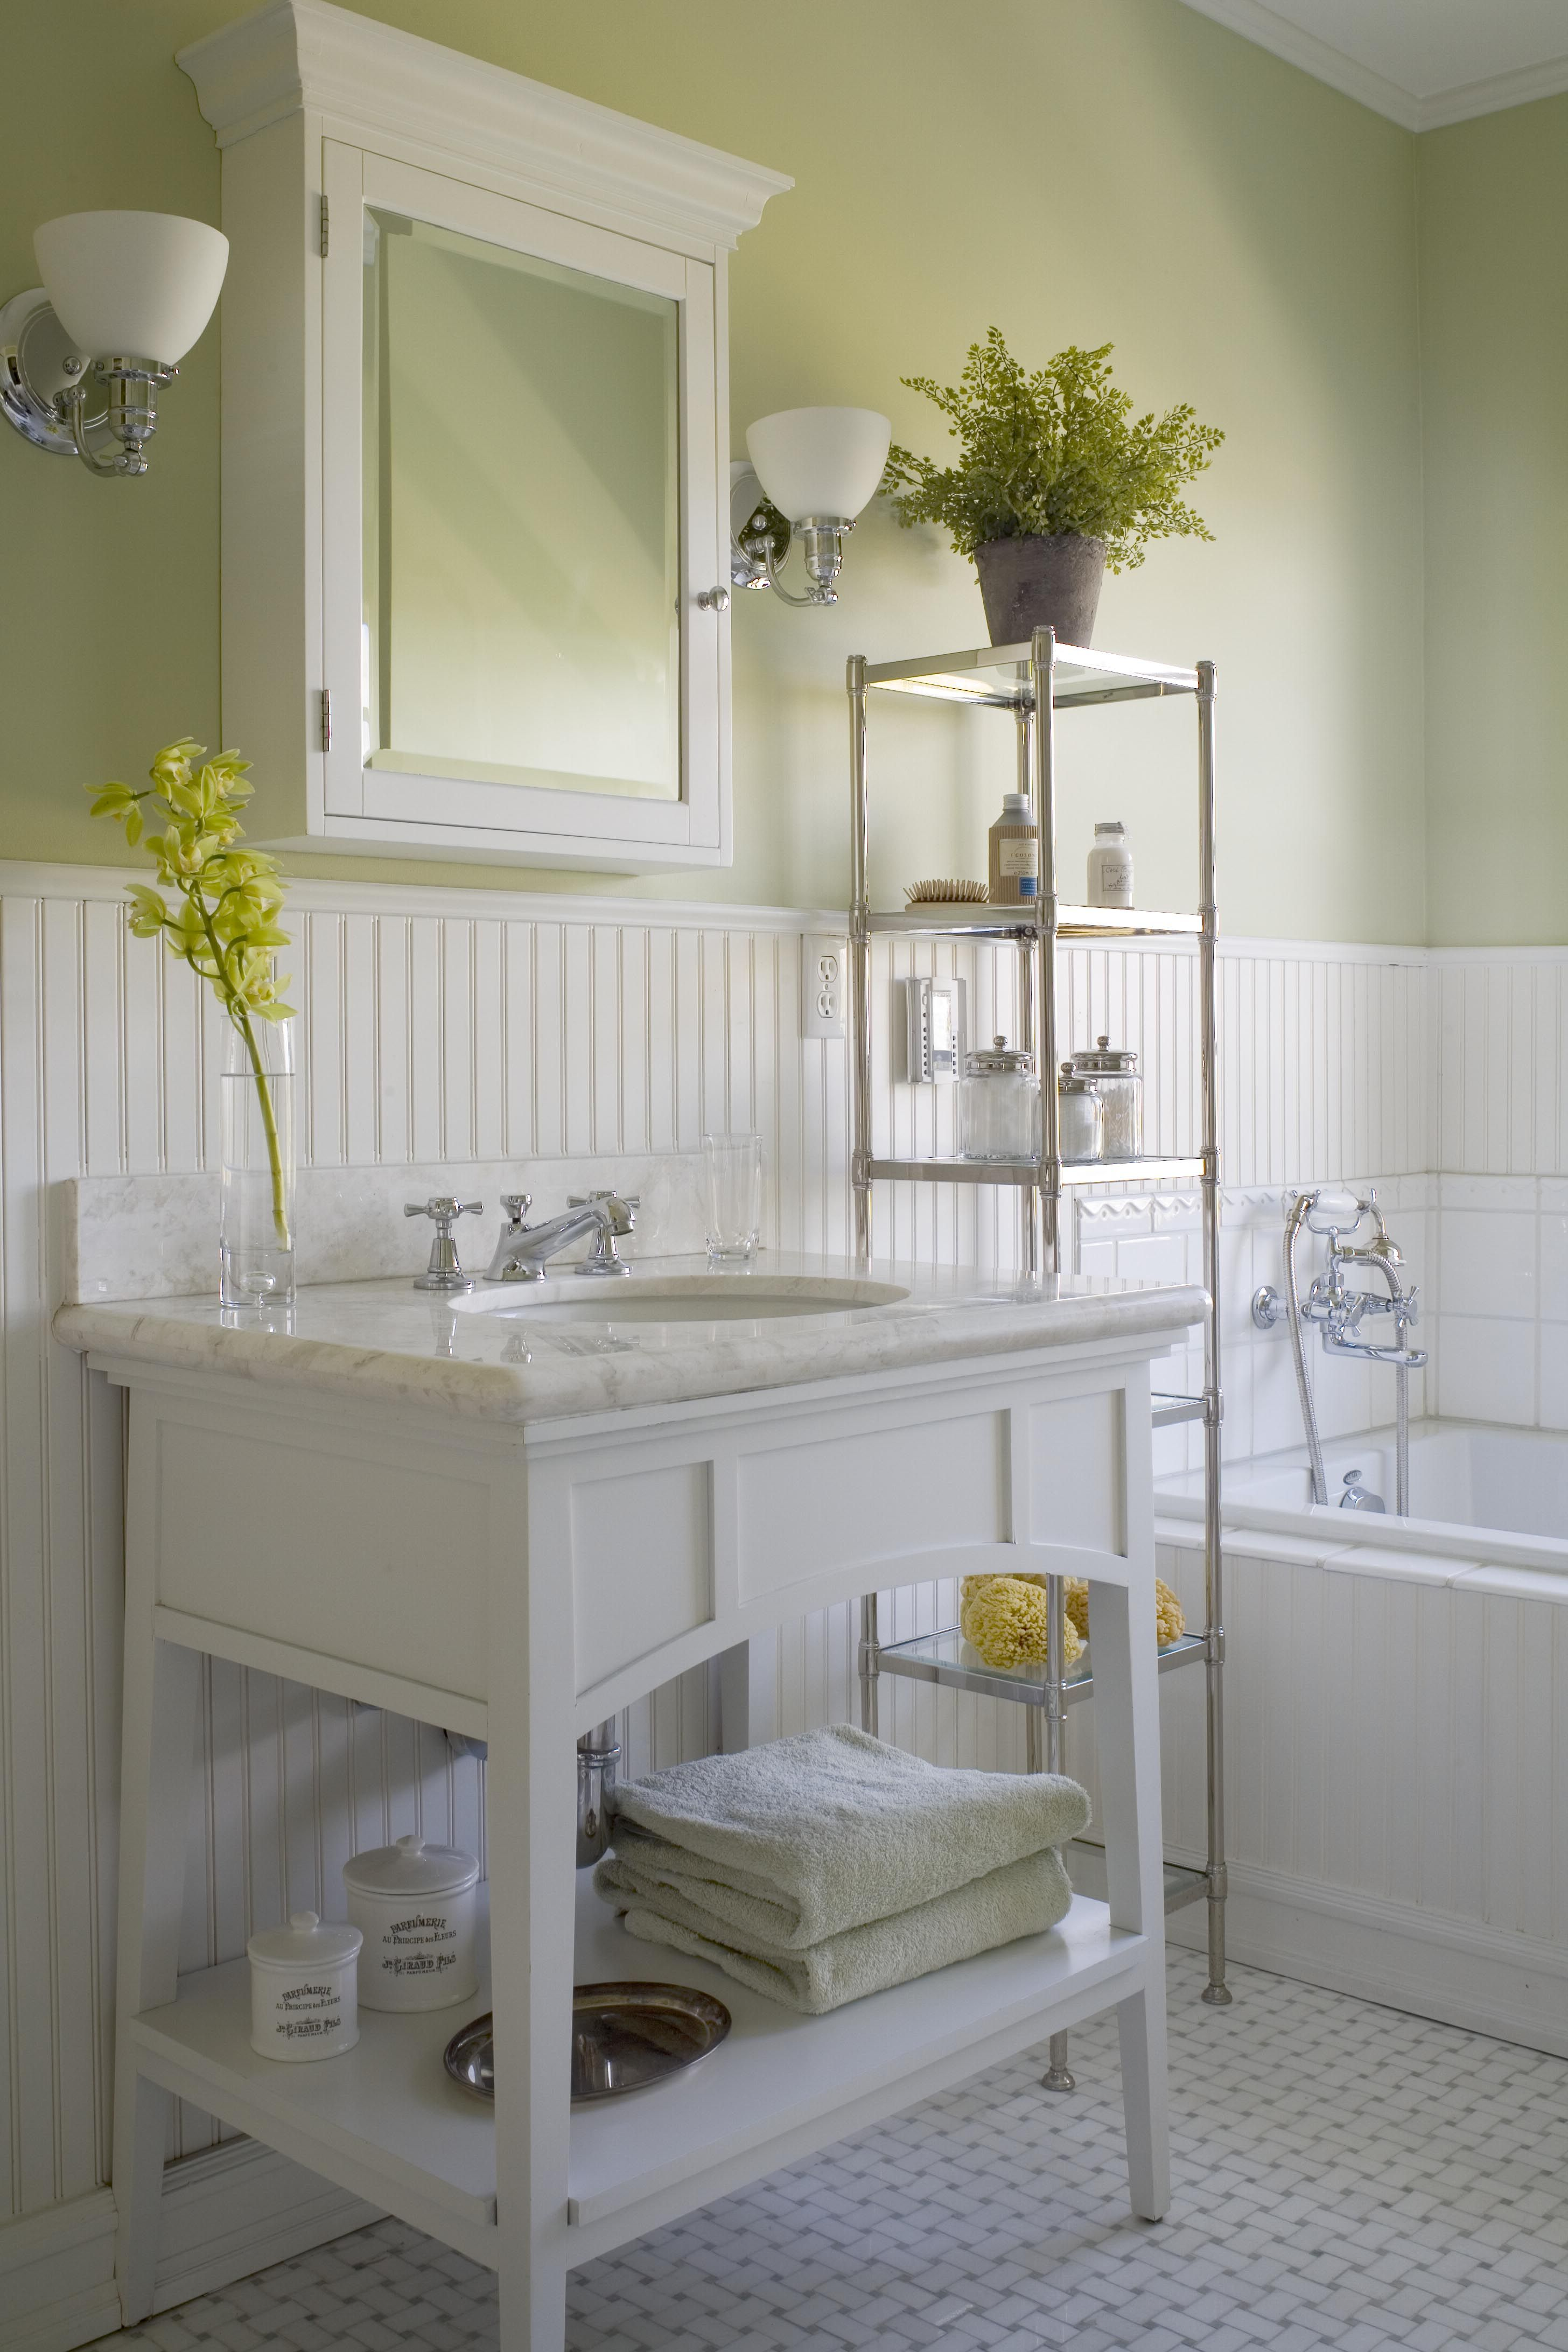 White Wainscoting And Pale Green Walls